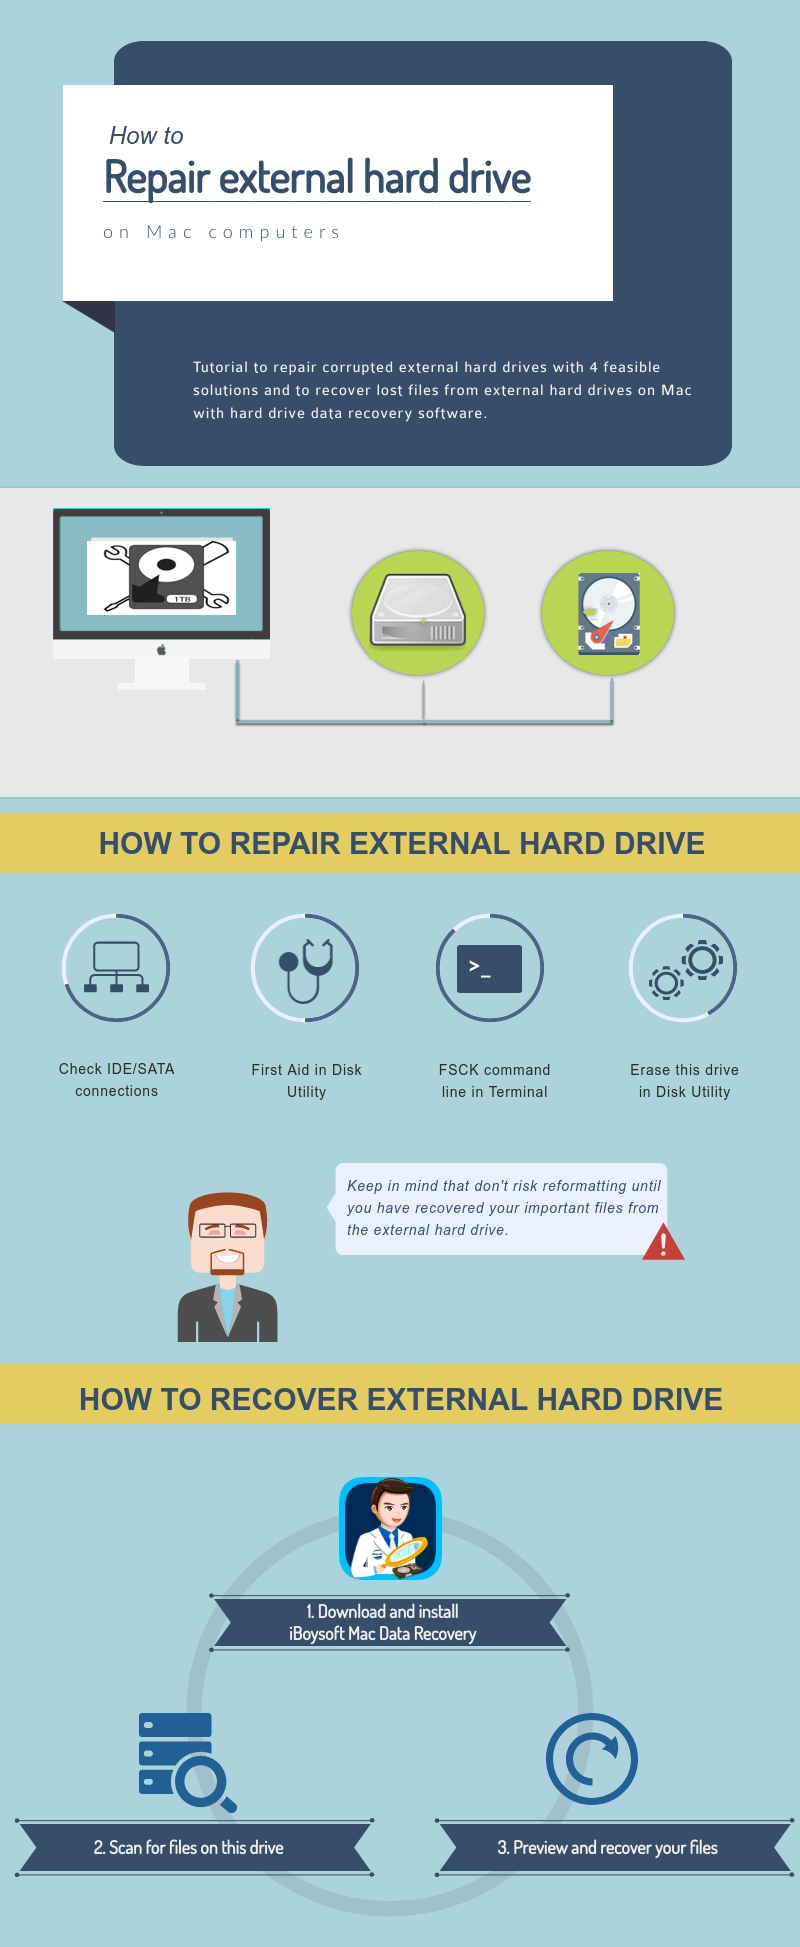 Repair external hard drive on Mac